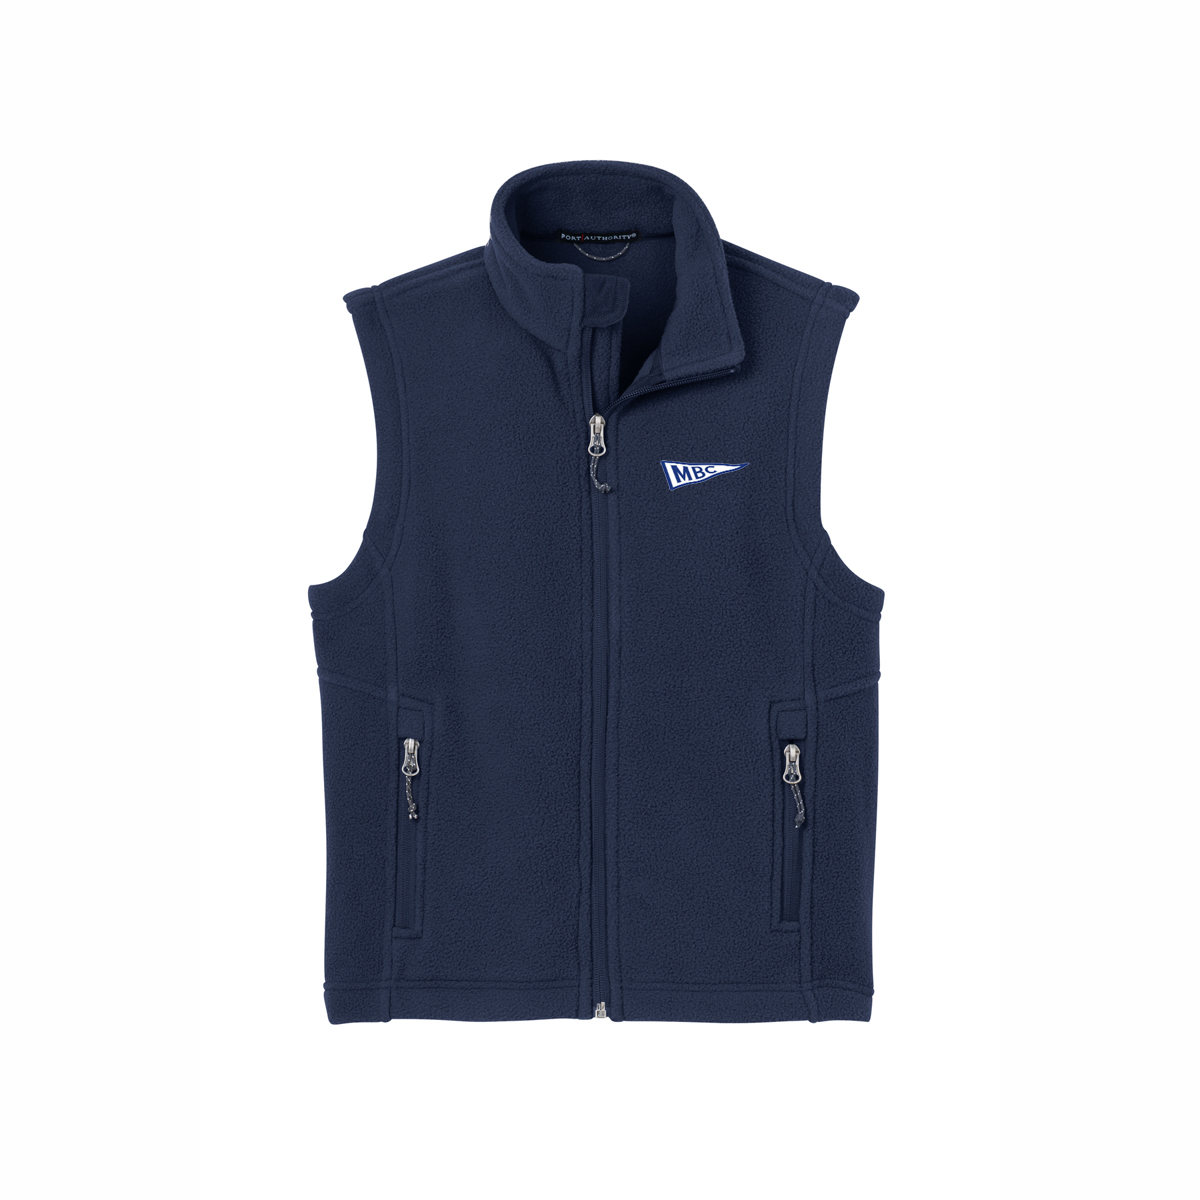 Monmouth Boat Club - Youth Value Fleece Vest